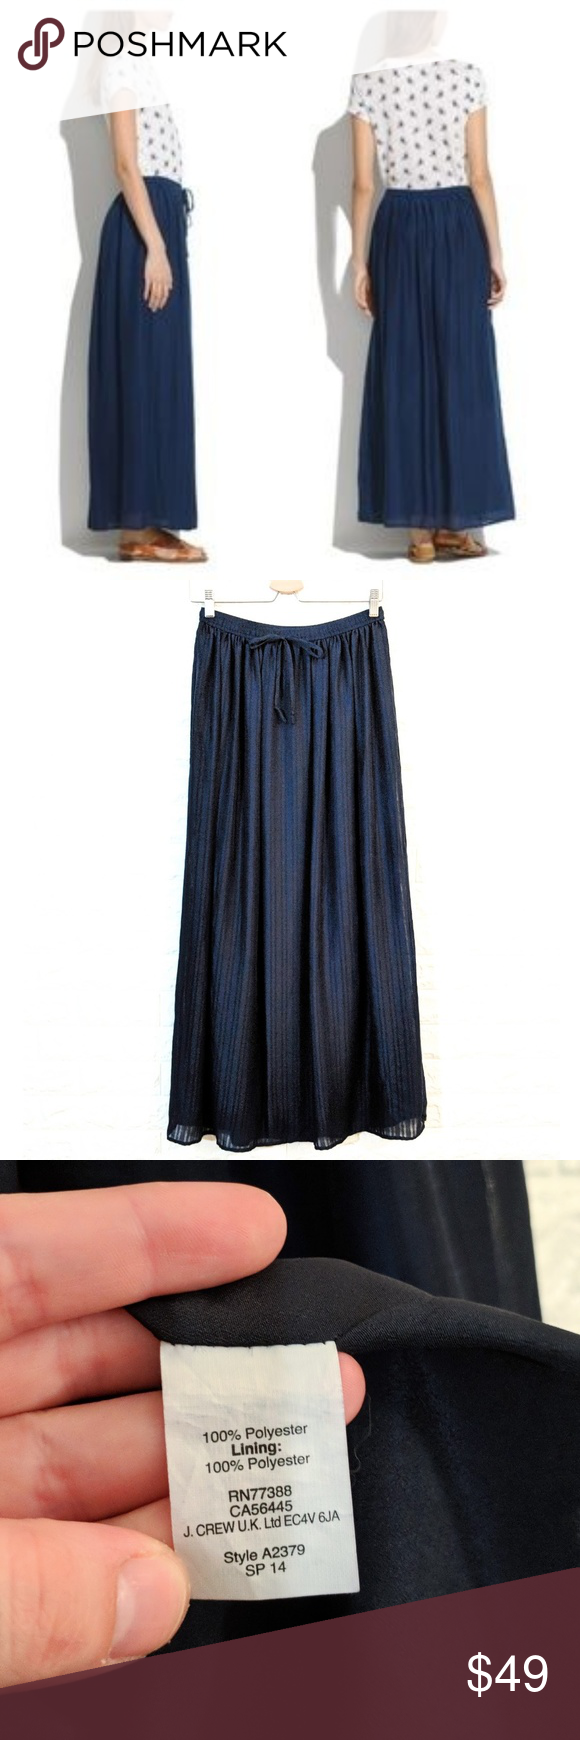 1ba5bf49e MADEWELL Skyward Skirt Maxi Navy Blue Size Small MADEWELL Skyward Skirt  Navy Blue Size Small Long